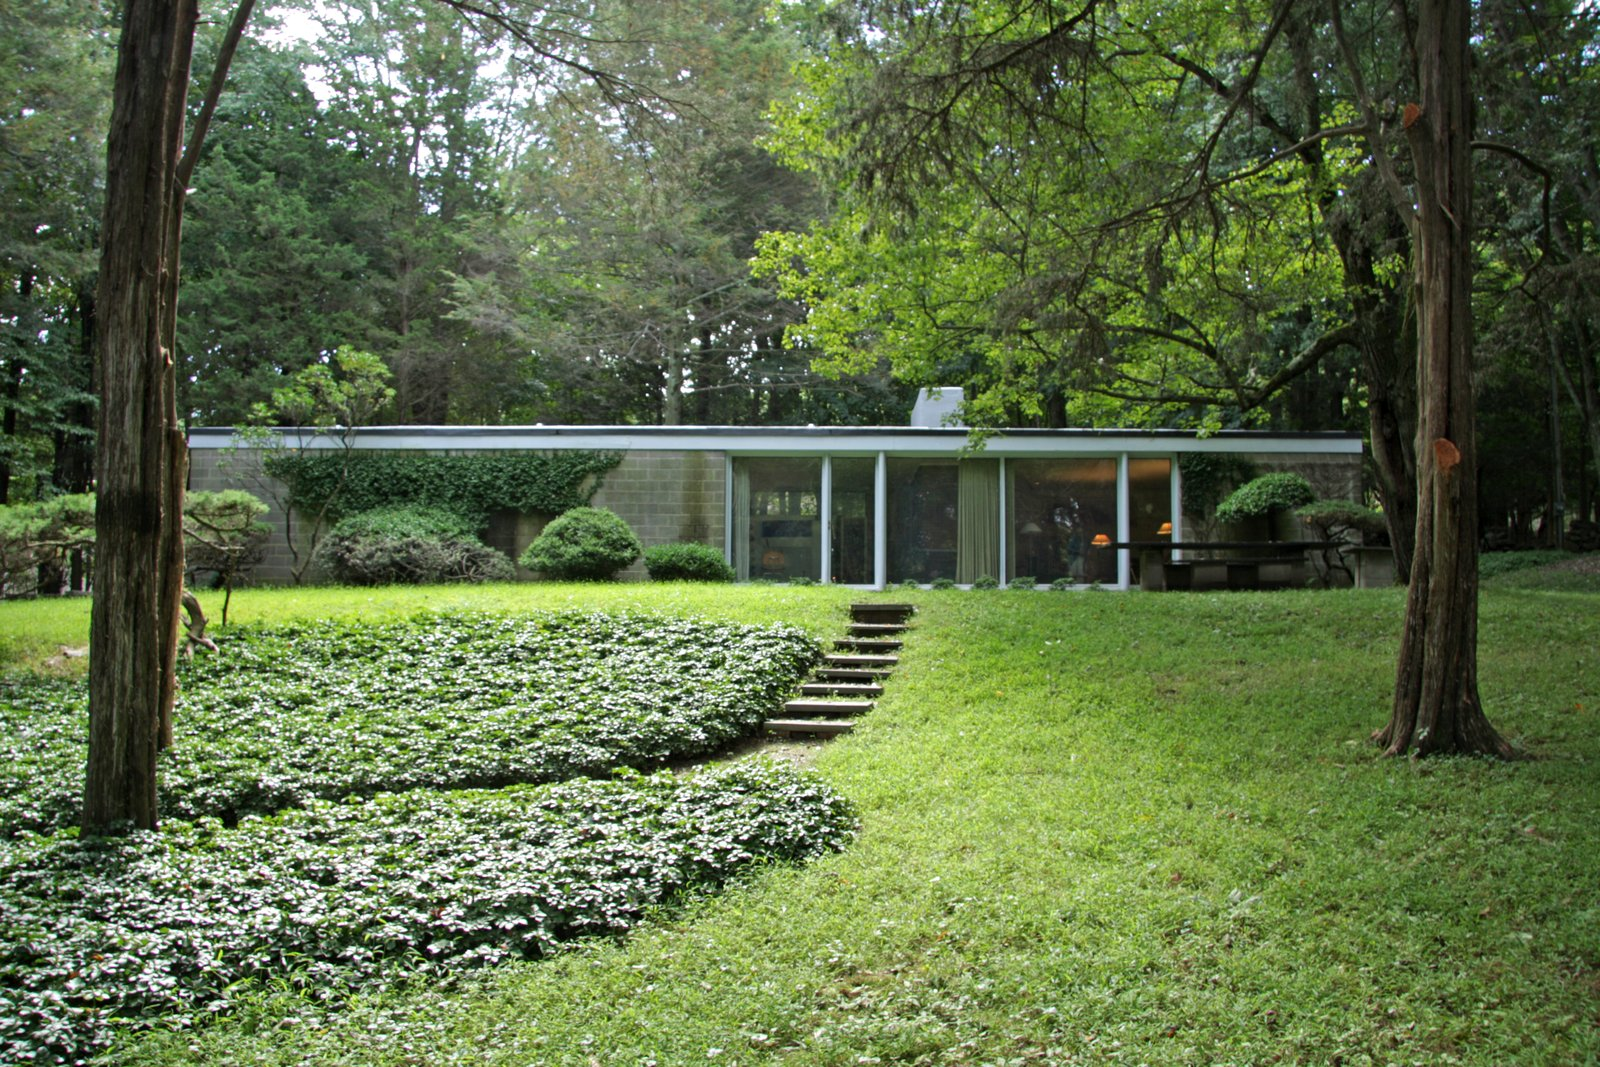 Photo 1 of 10 in With $1 Million, You Can Save Philip Johnson's First Commissioned House